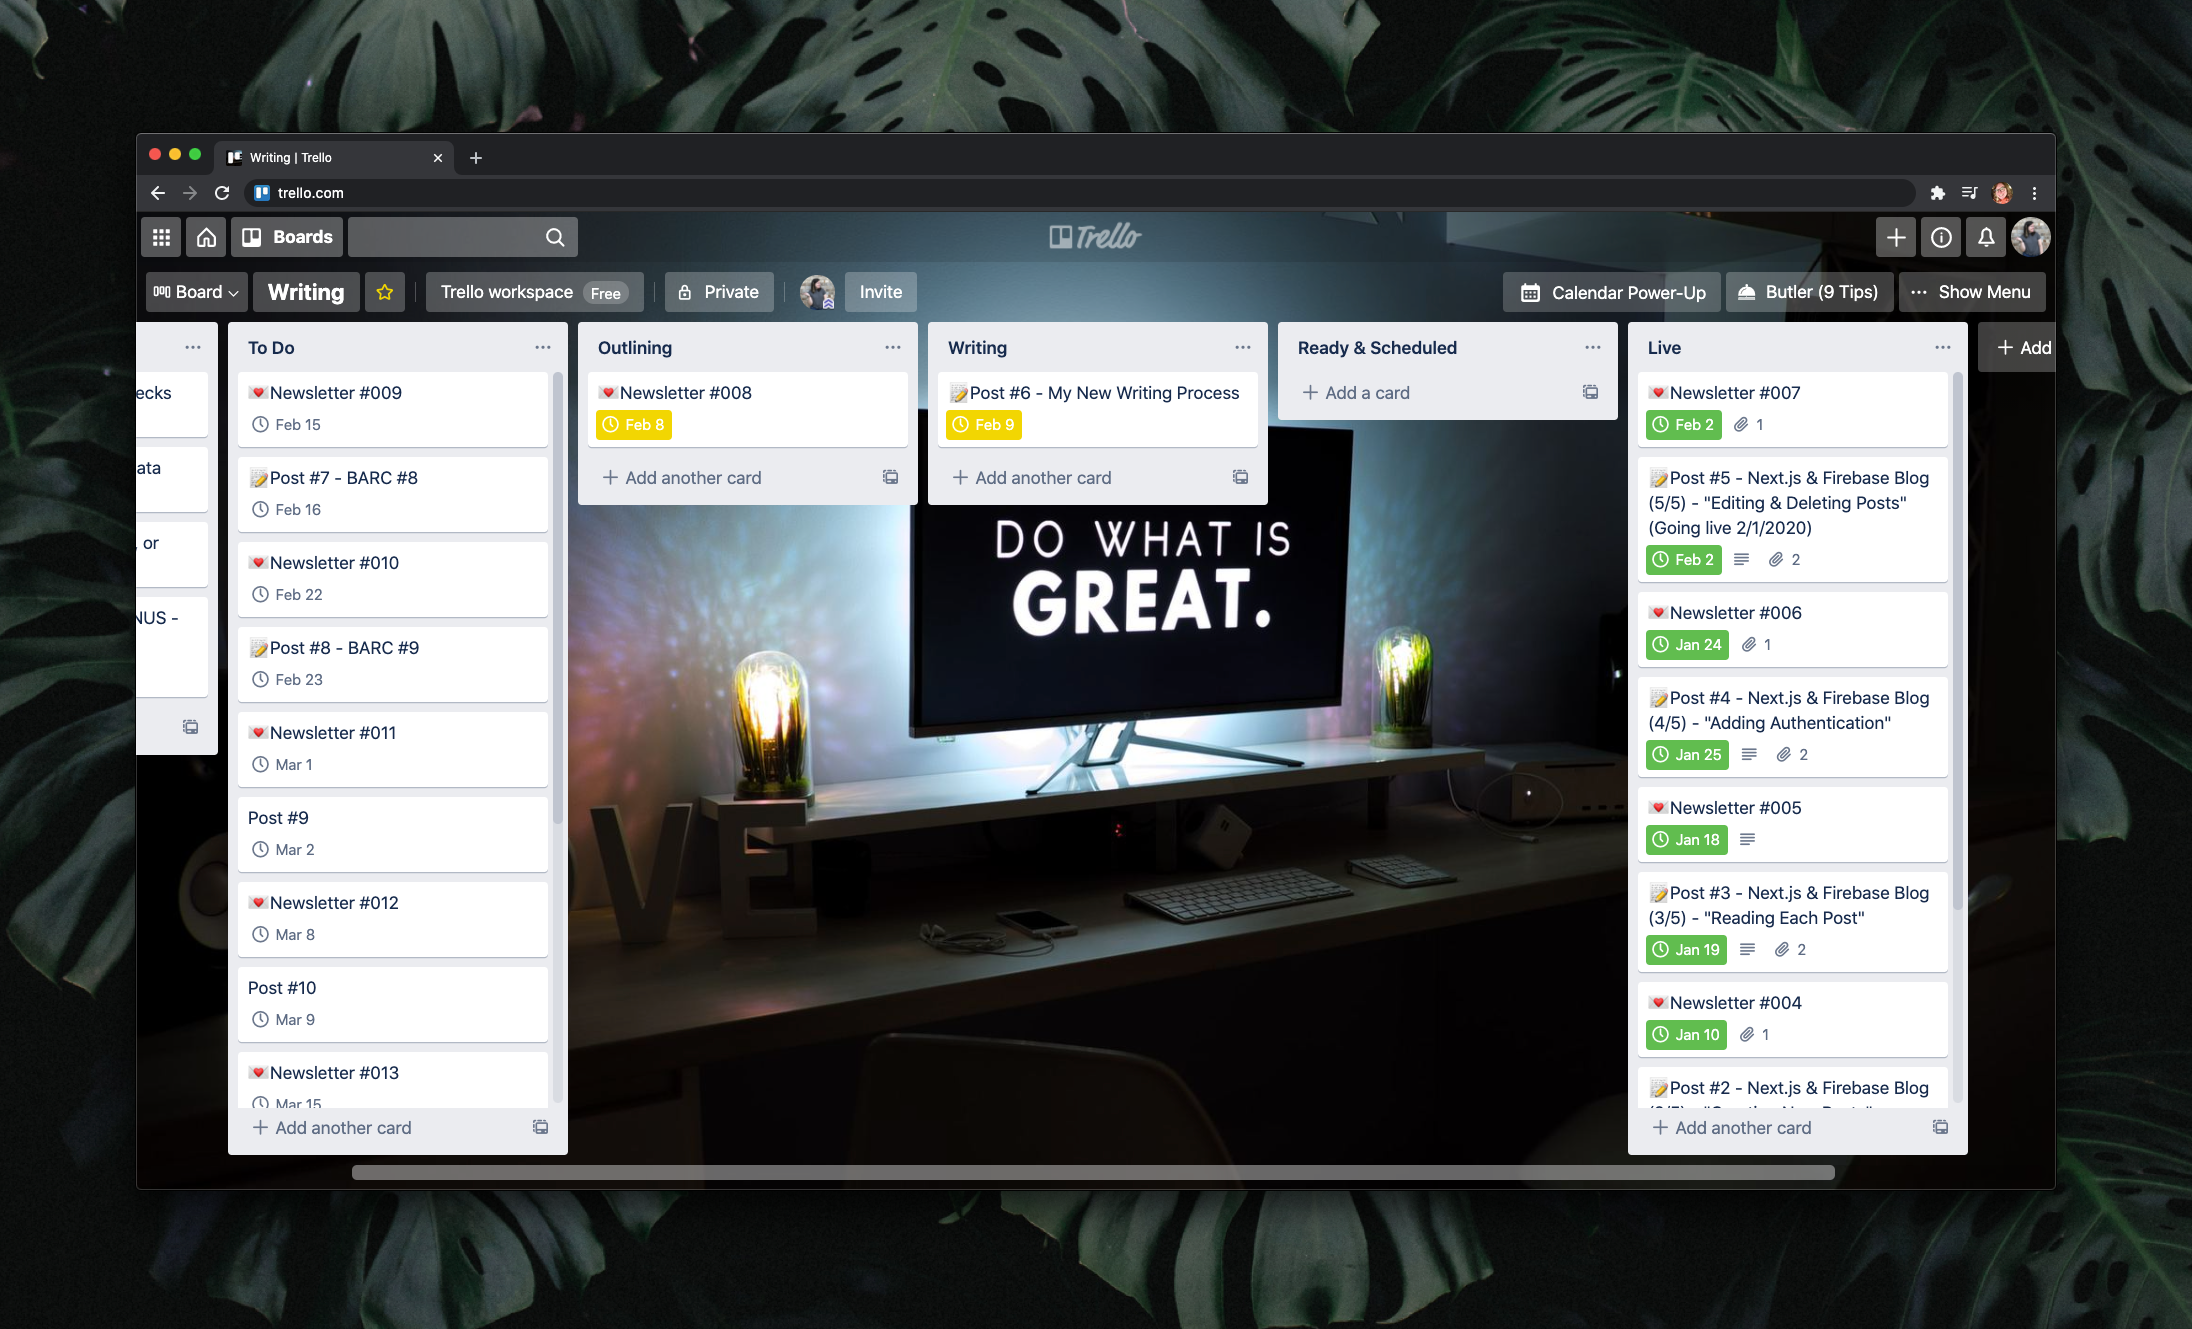 """Trello board showing 5 columns: To Do, Outlining, Writing, Ready & Scheduled, and Live. The background of the board is a desk in a dark room with a computer screen that reads """"Do what is great."""""""